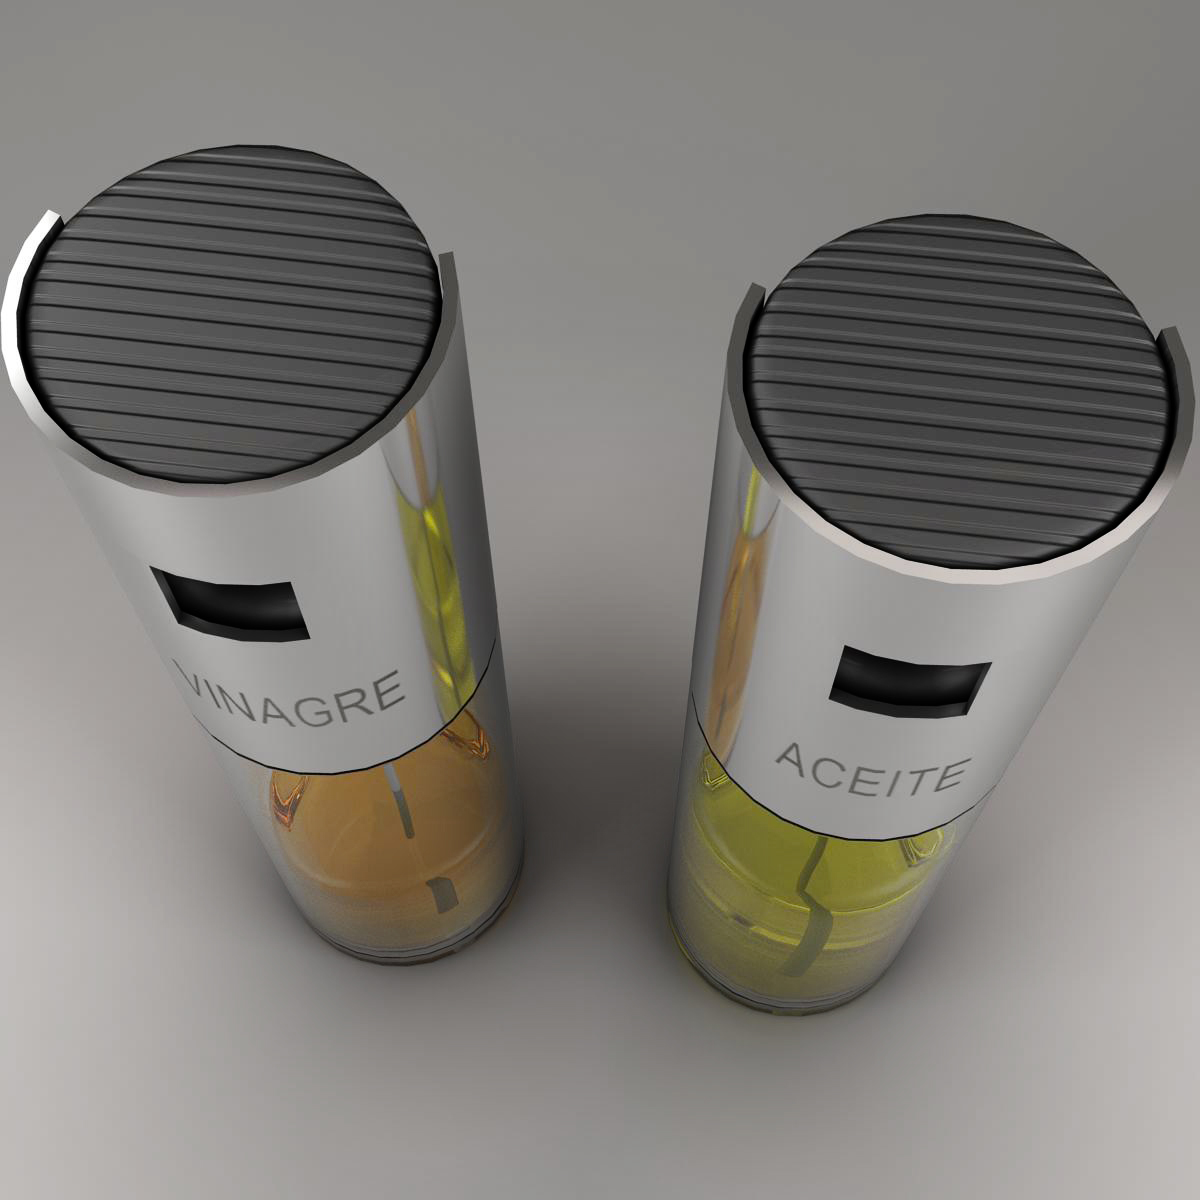 oil and vinegar 3d model 3ds max fbx c4d ma mb obj 159378